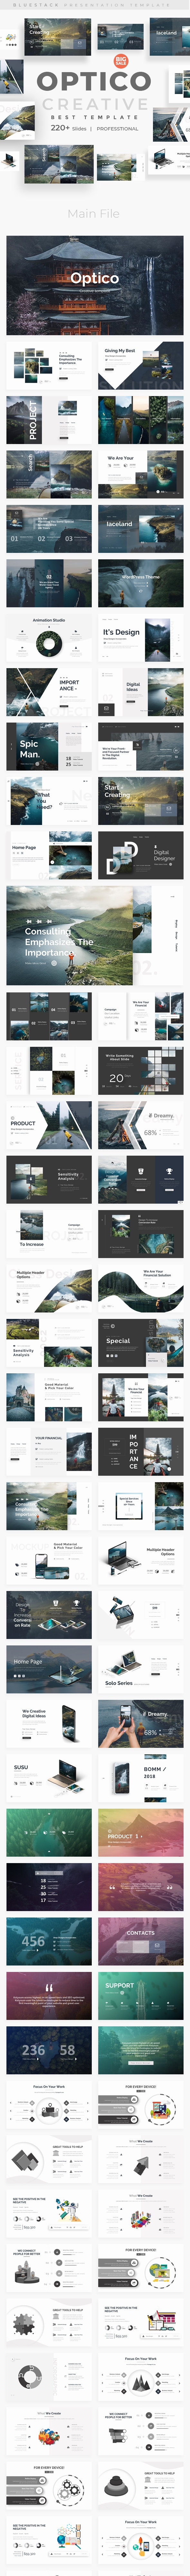 Optico Premium Design Powerpoint Template - Creative PowerPoint Templates